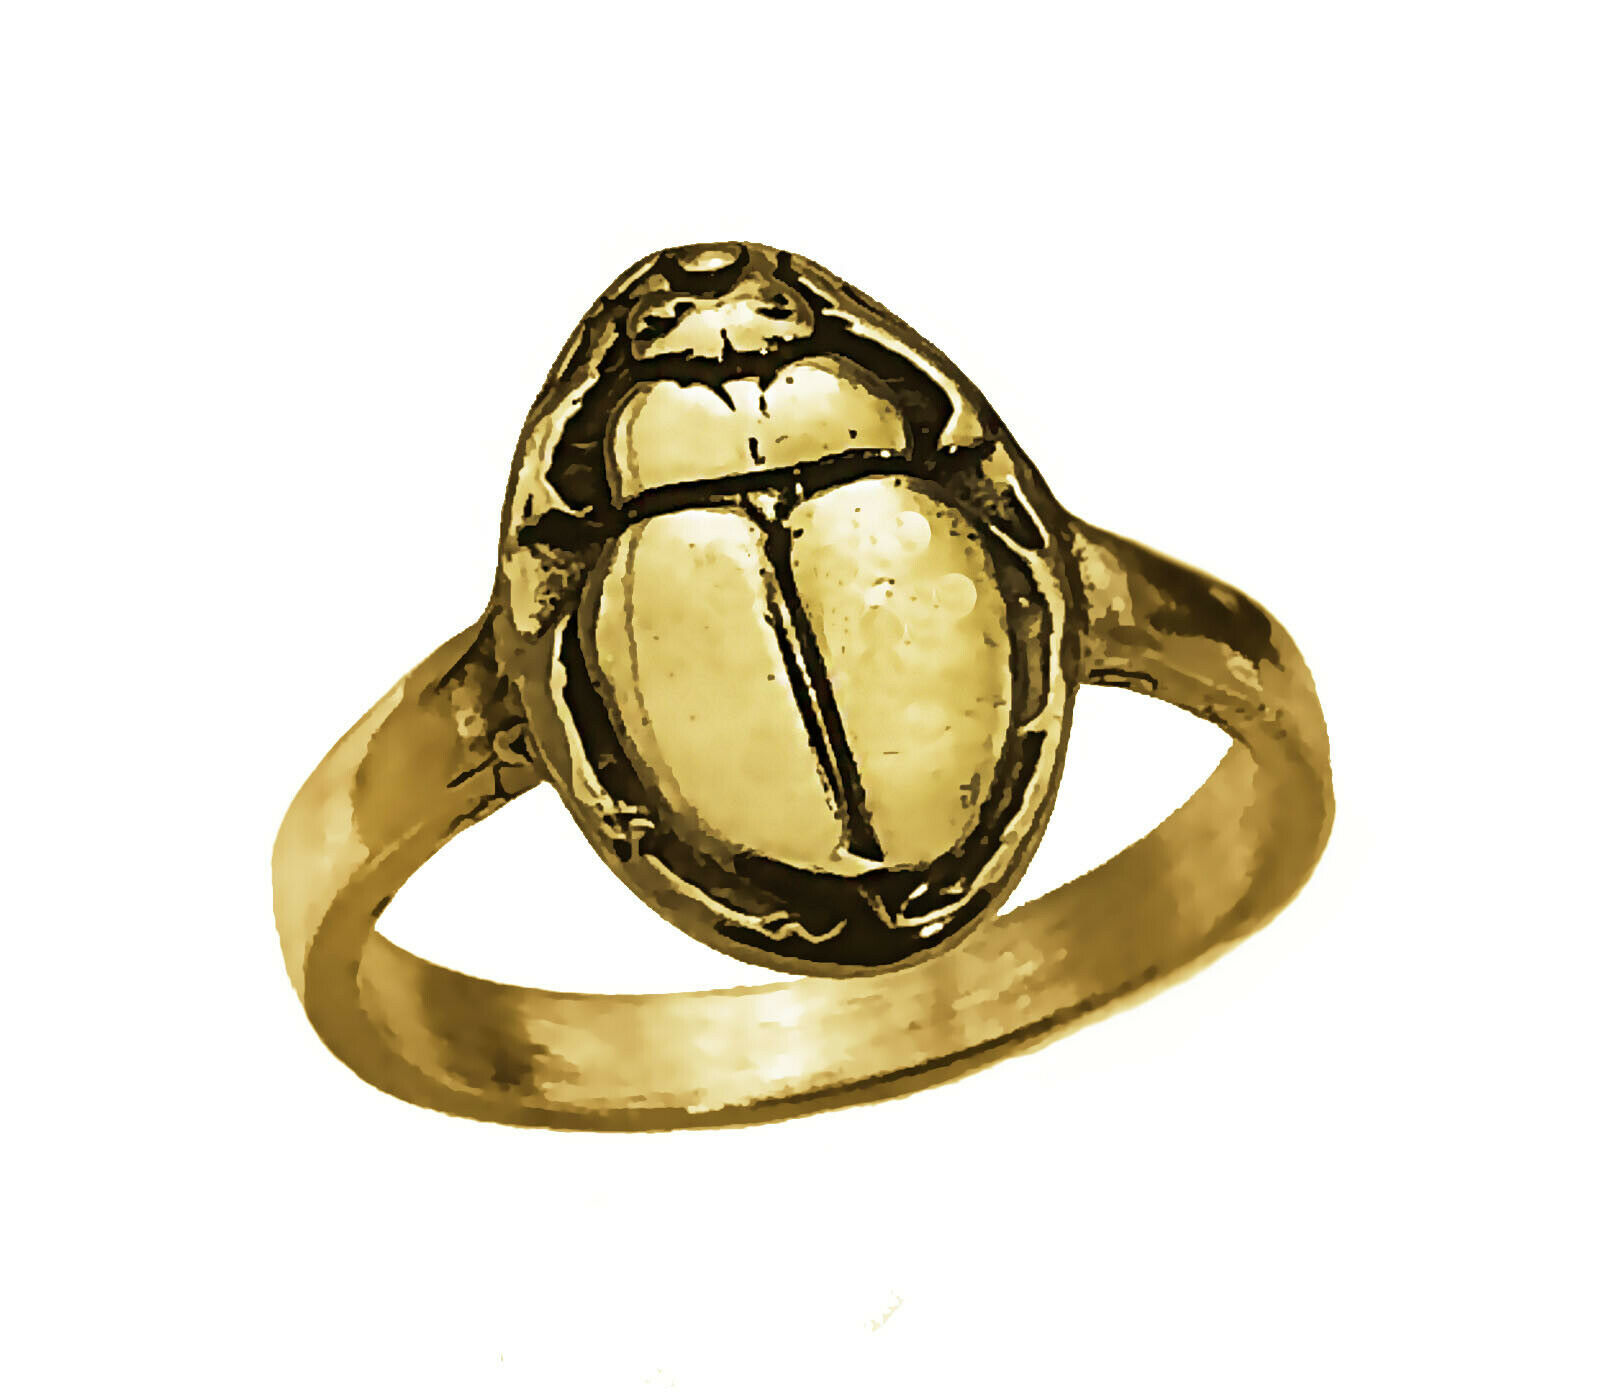 Yellow 24k Gold Plated Egyptian Egypt Ring Scarab beetle Jewelry Choose Size